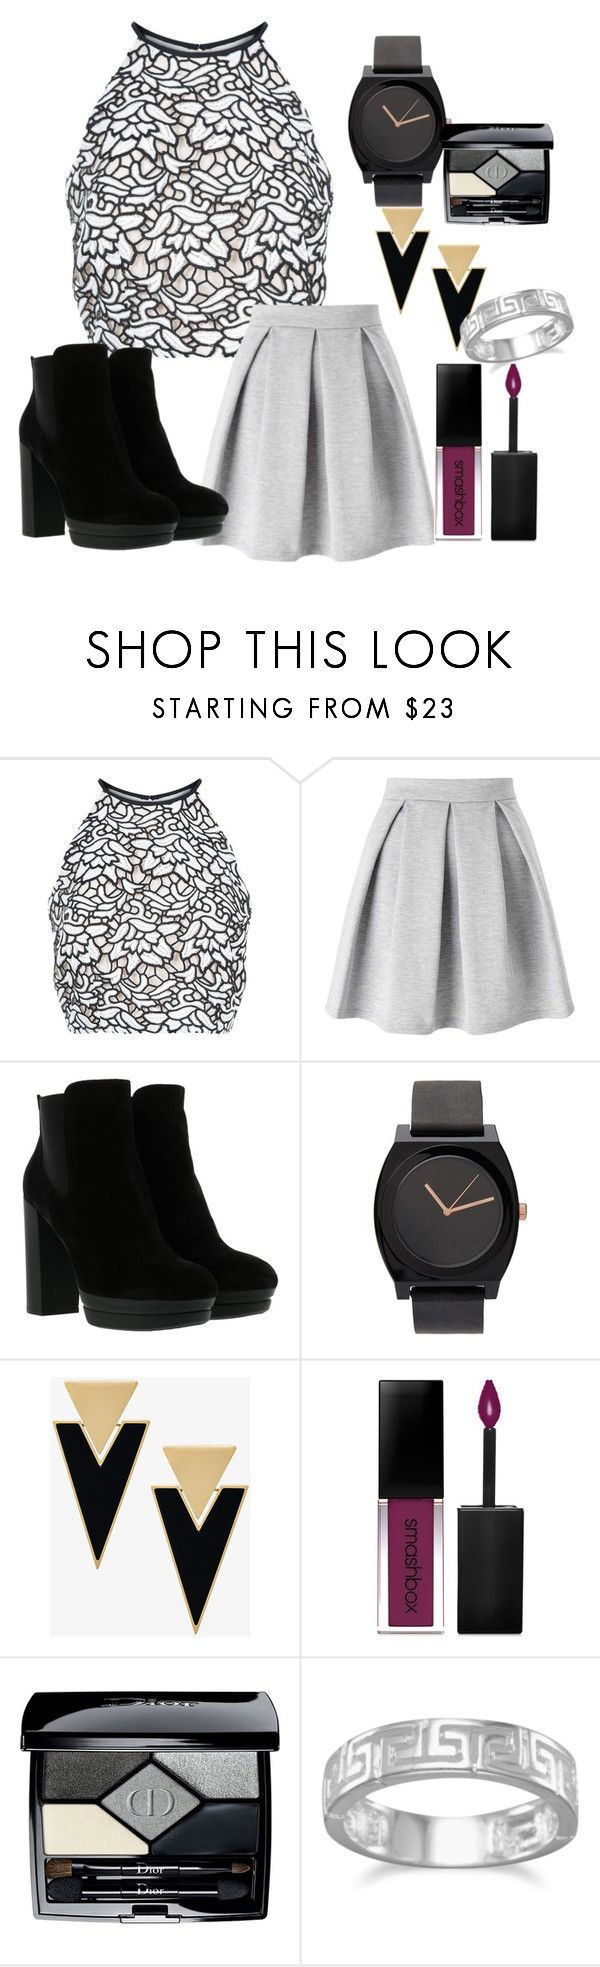 """""""Untitled #3"""" by stefanihaley ❤ liked on Polyvore featuring Keepsake the Label, Miss Selfridge, Hogan, Yves Saint Laurent, Smashbox, Christian Dior and BillyTheTree"""